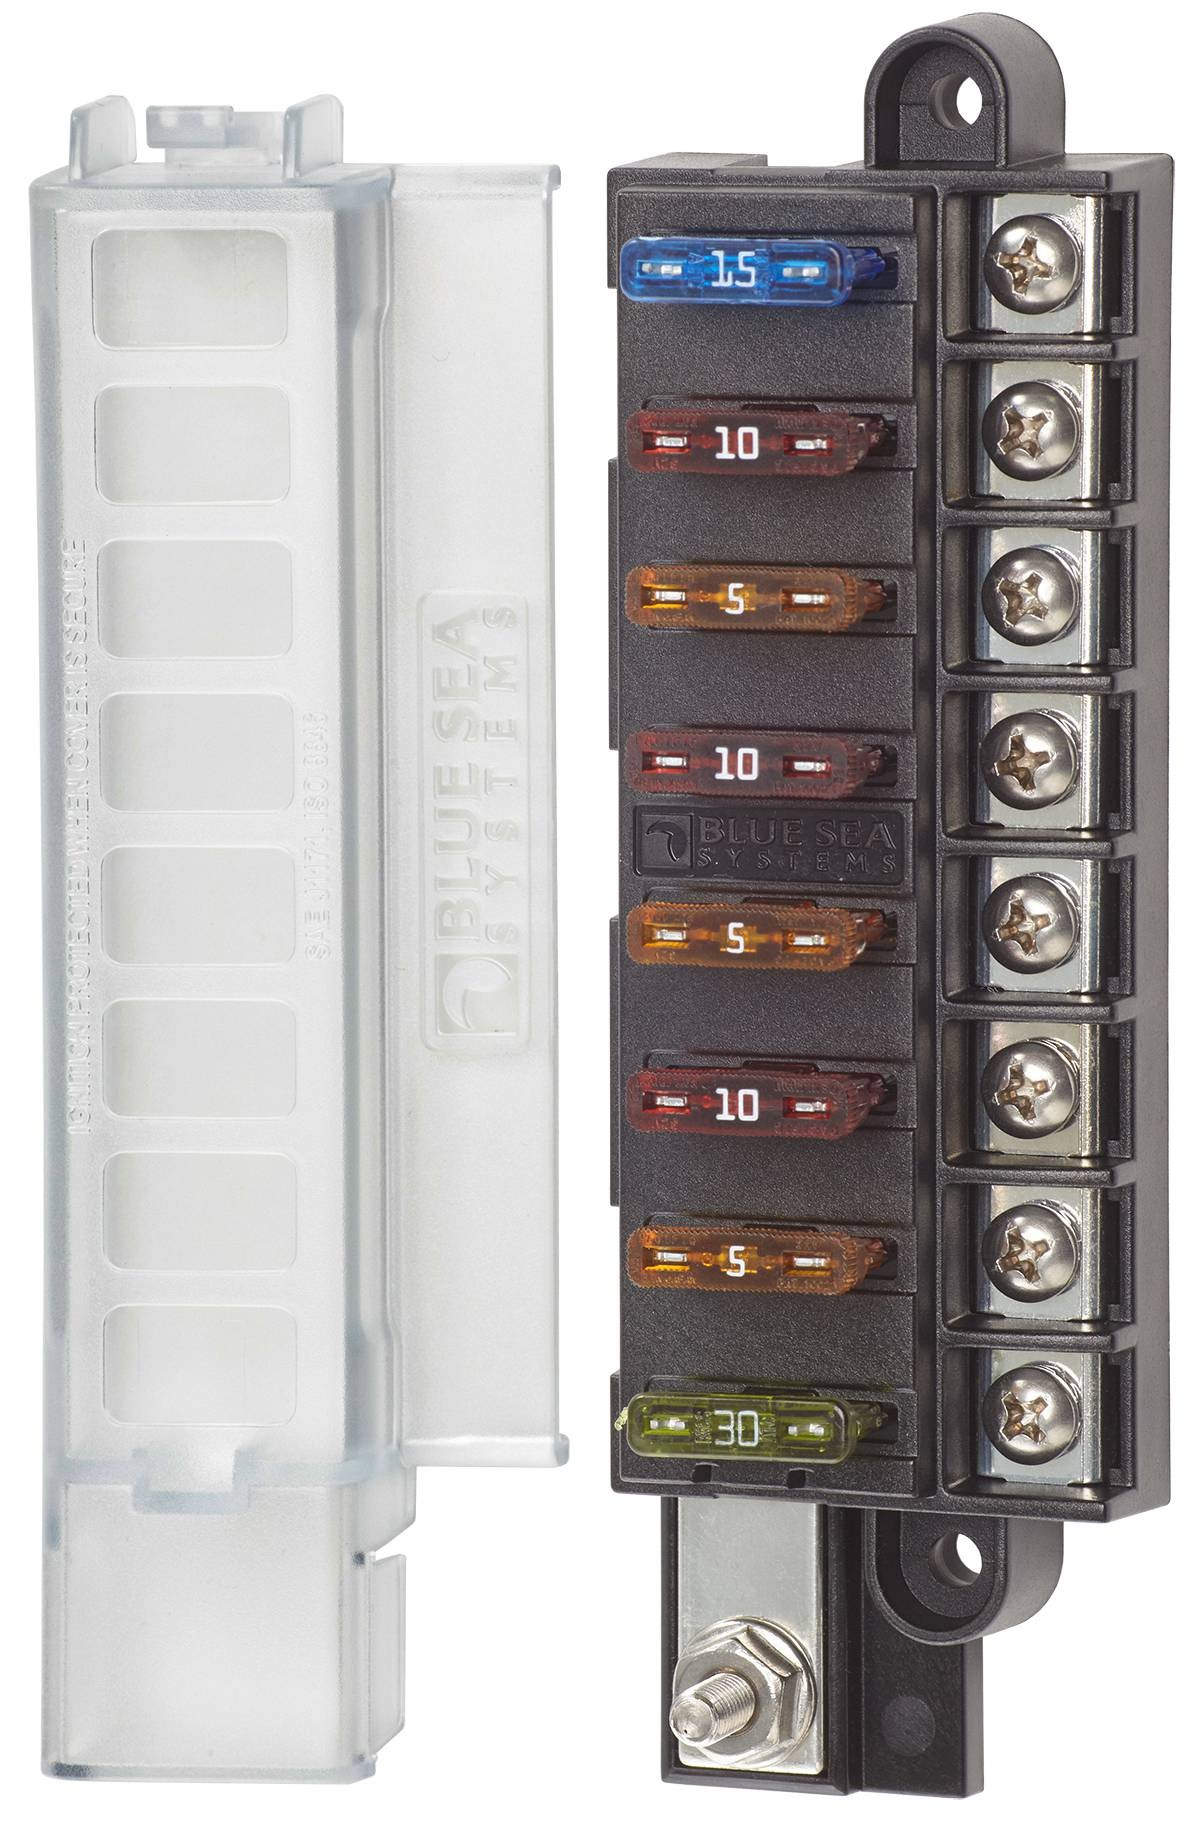 4x4 Outdoor Tuning    Bluesea Fuse Box With Cover For 8